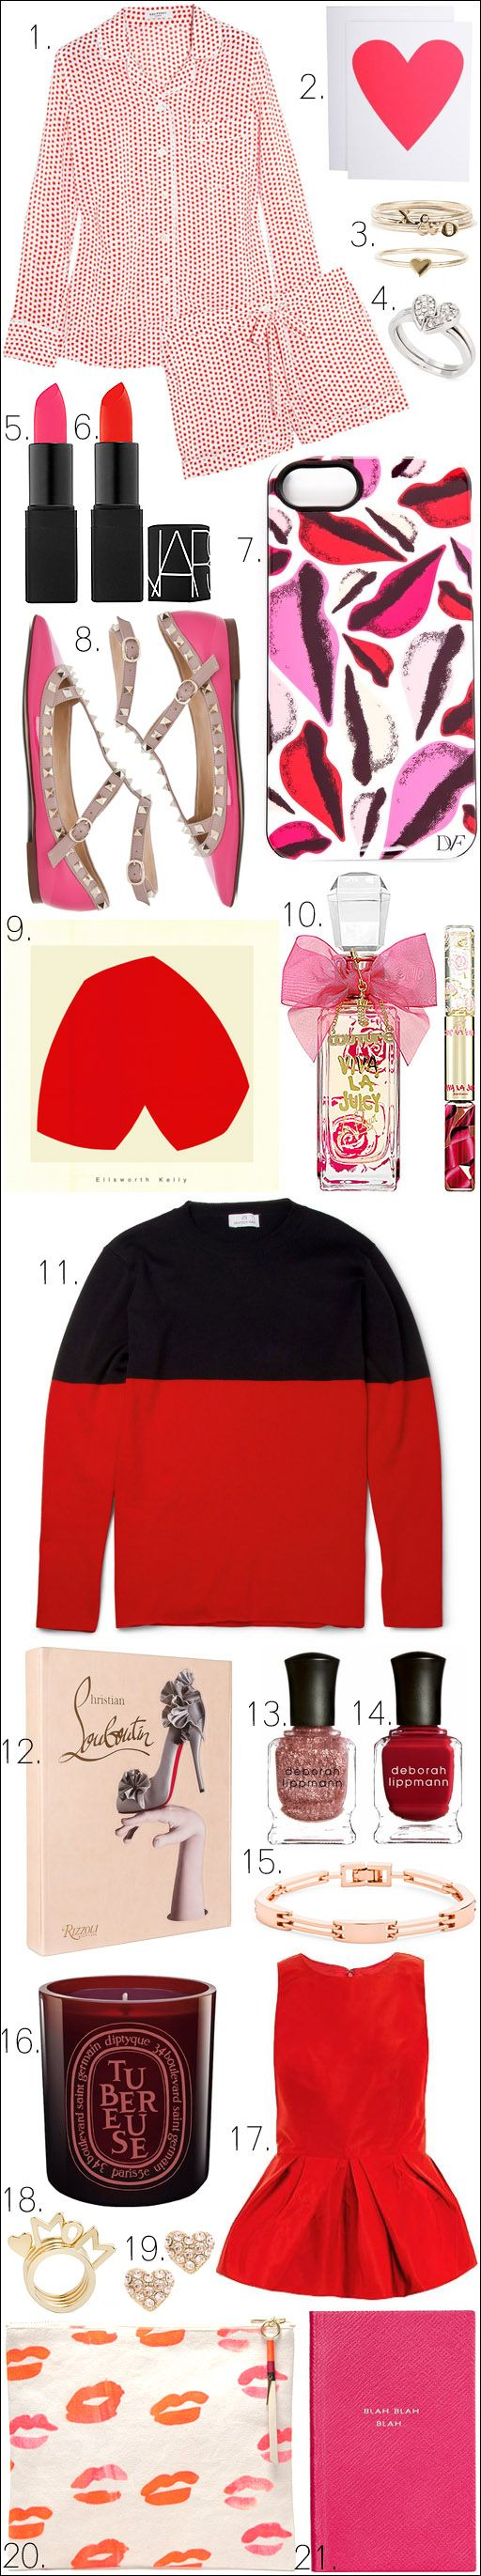 valentine day 2013 gift guide